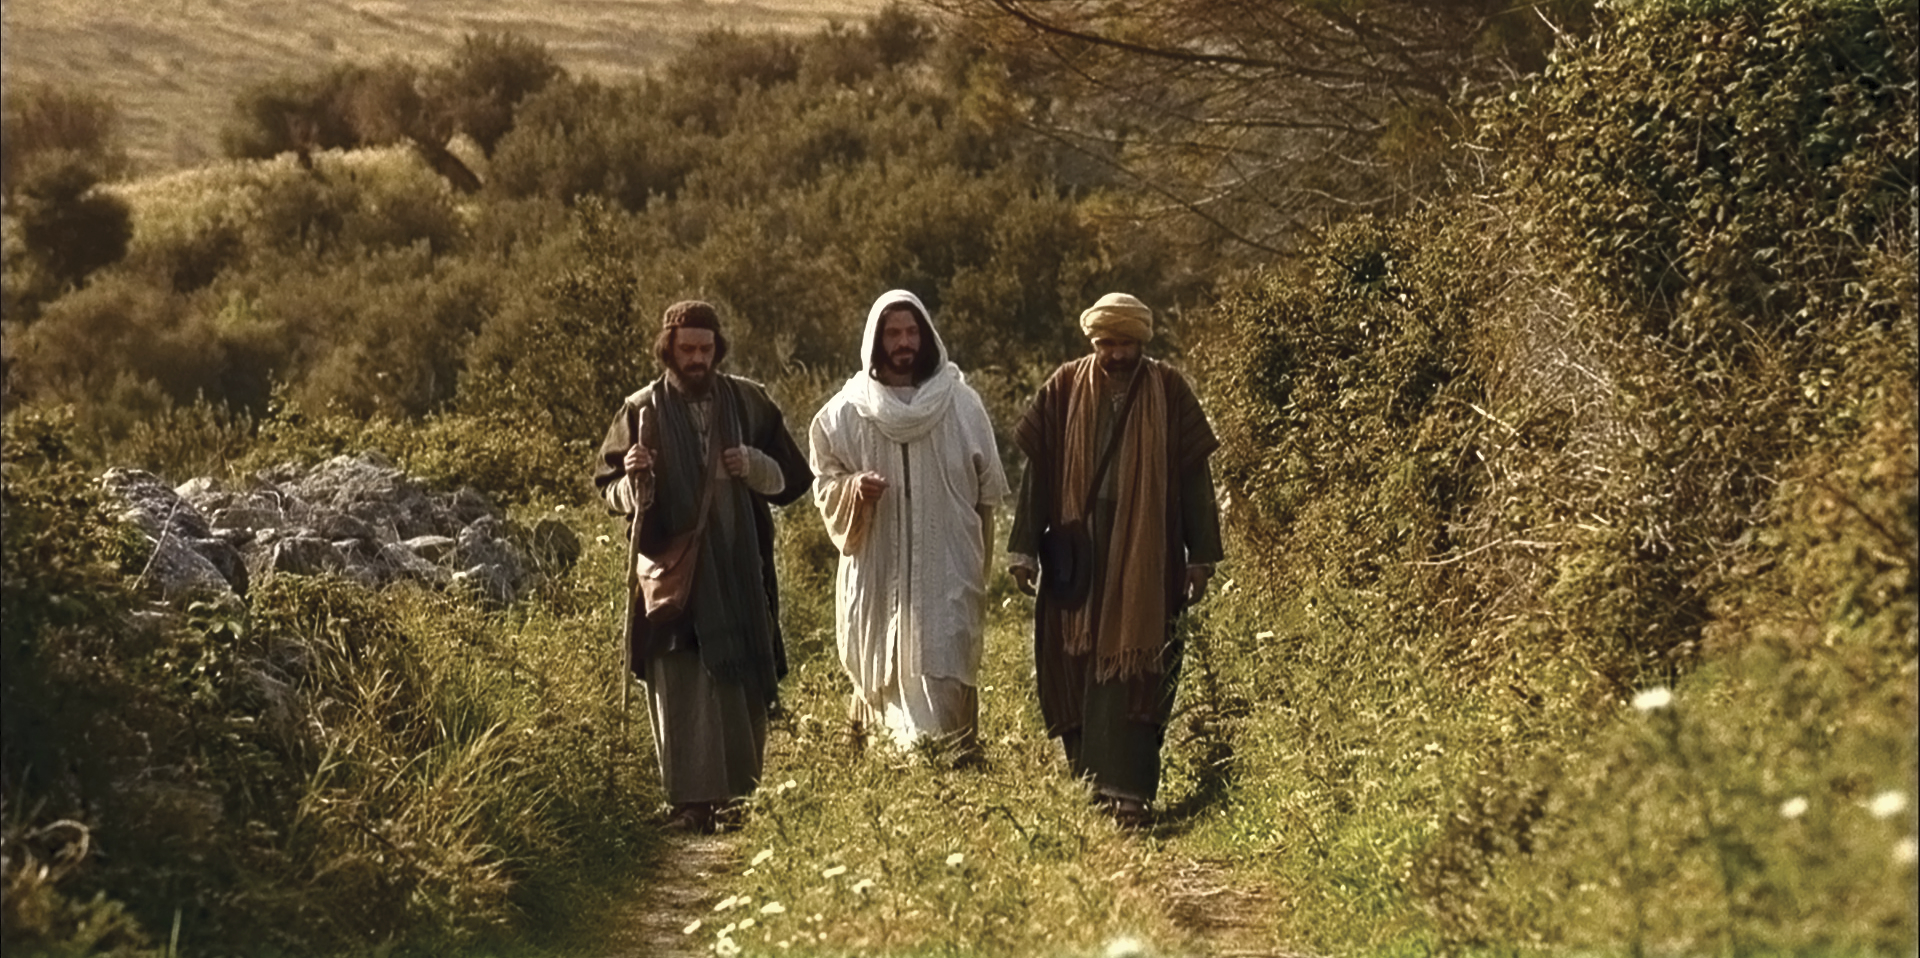 Christ walks with Cleopas and another disciple on the road to Emmaus.